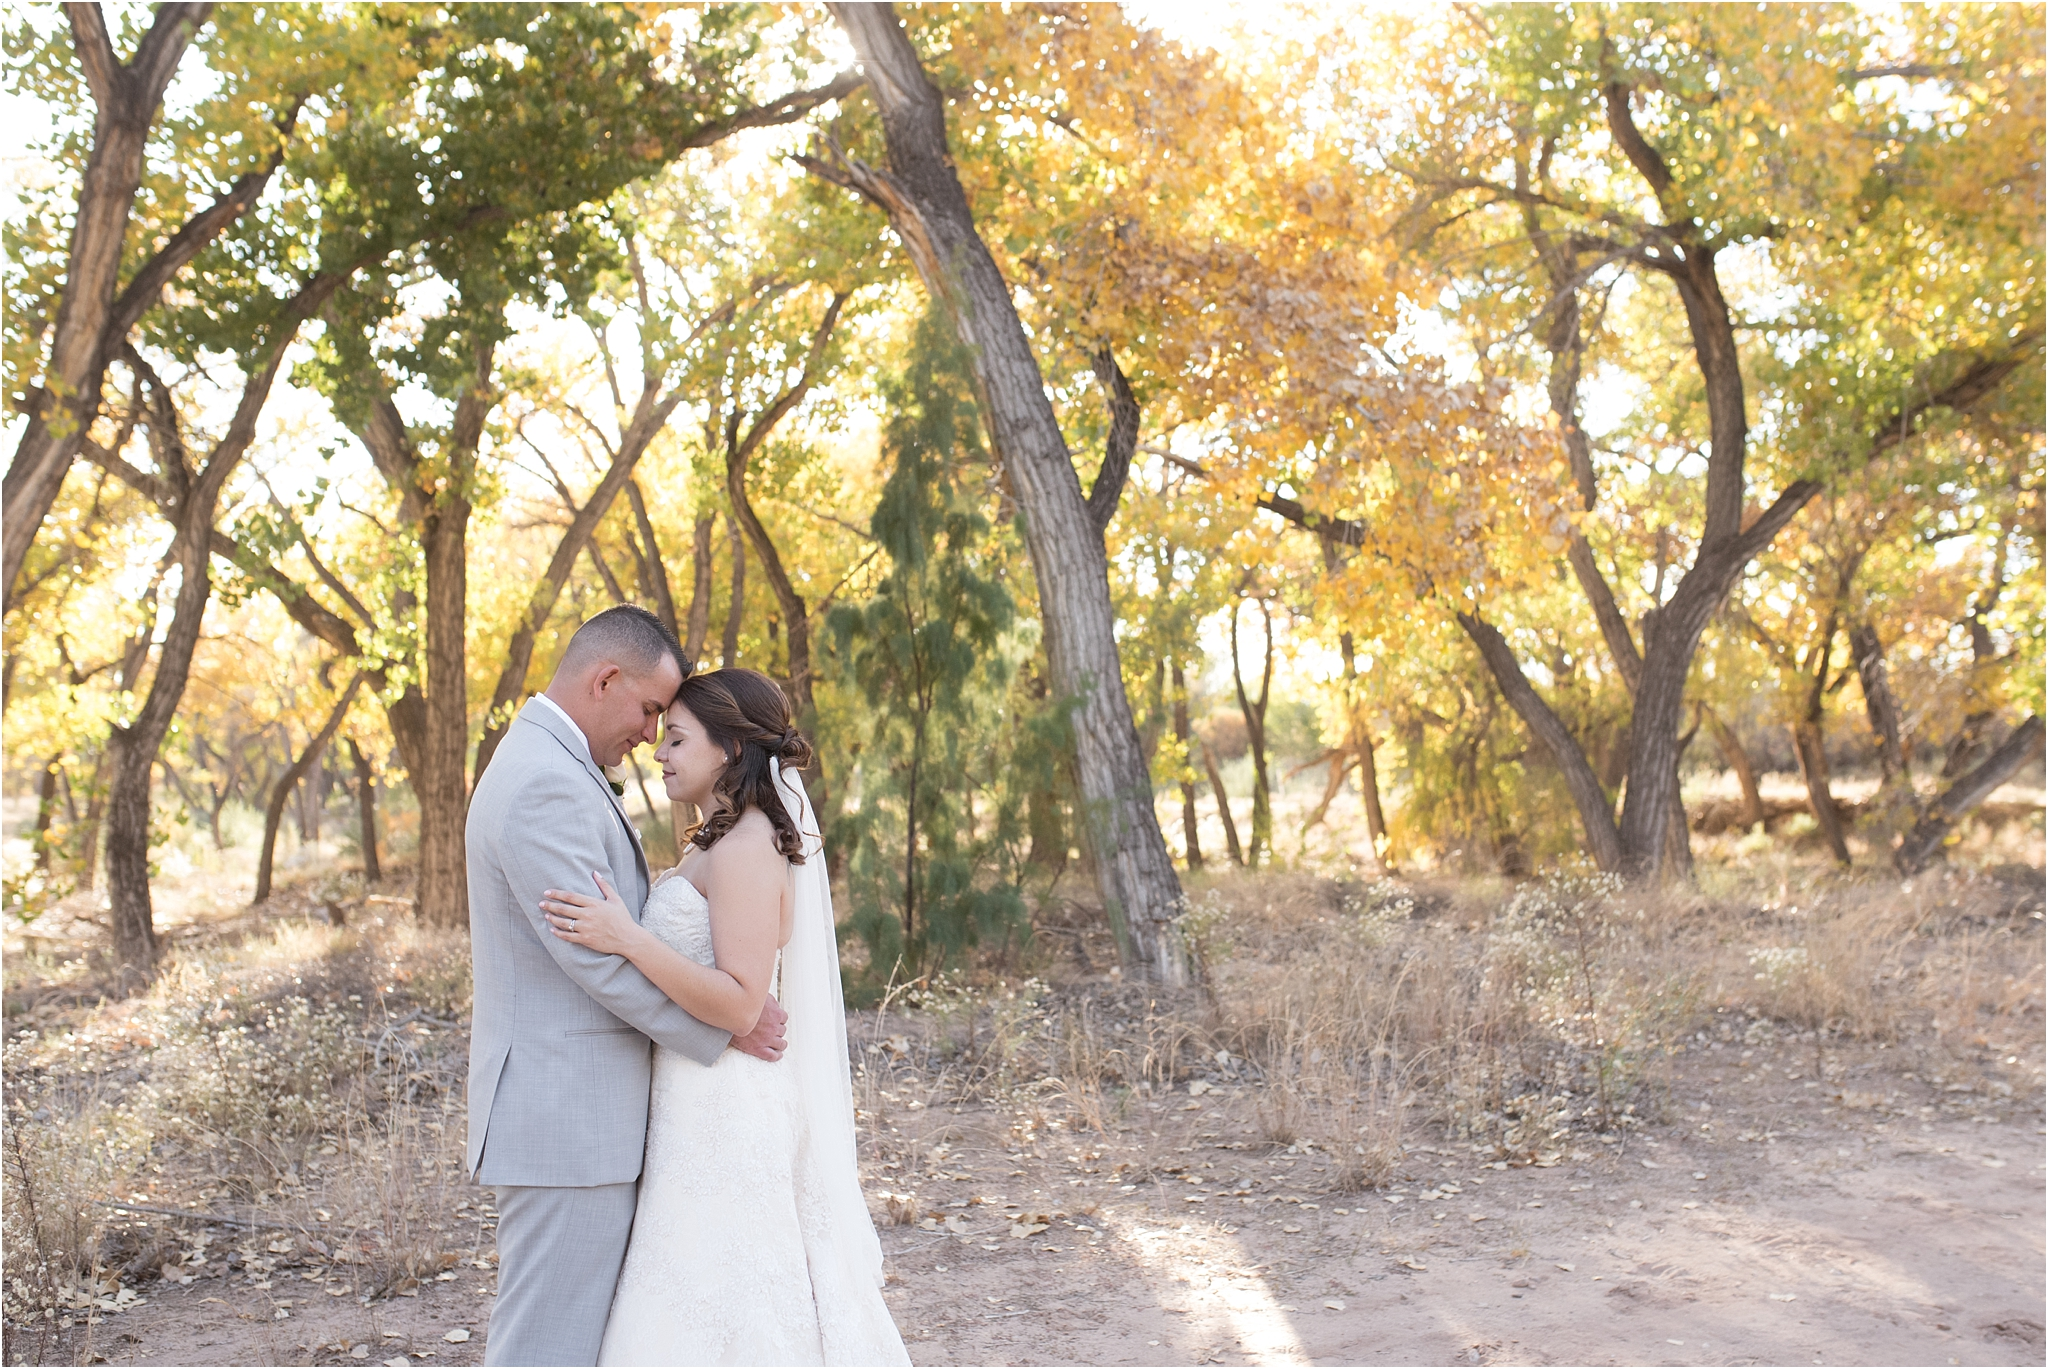 kayla kitts photography - albuquerque wedding photographer - hairpins and scissors - a cake odyssey - new mexico wedding photographer_0047.jpg